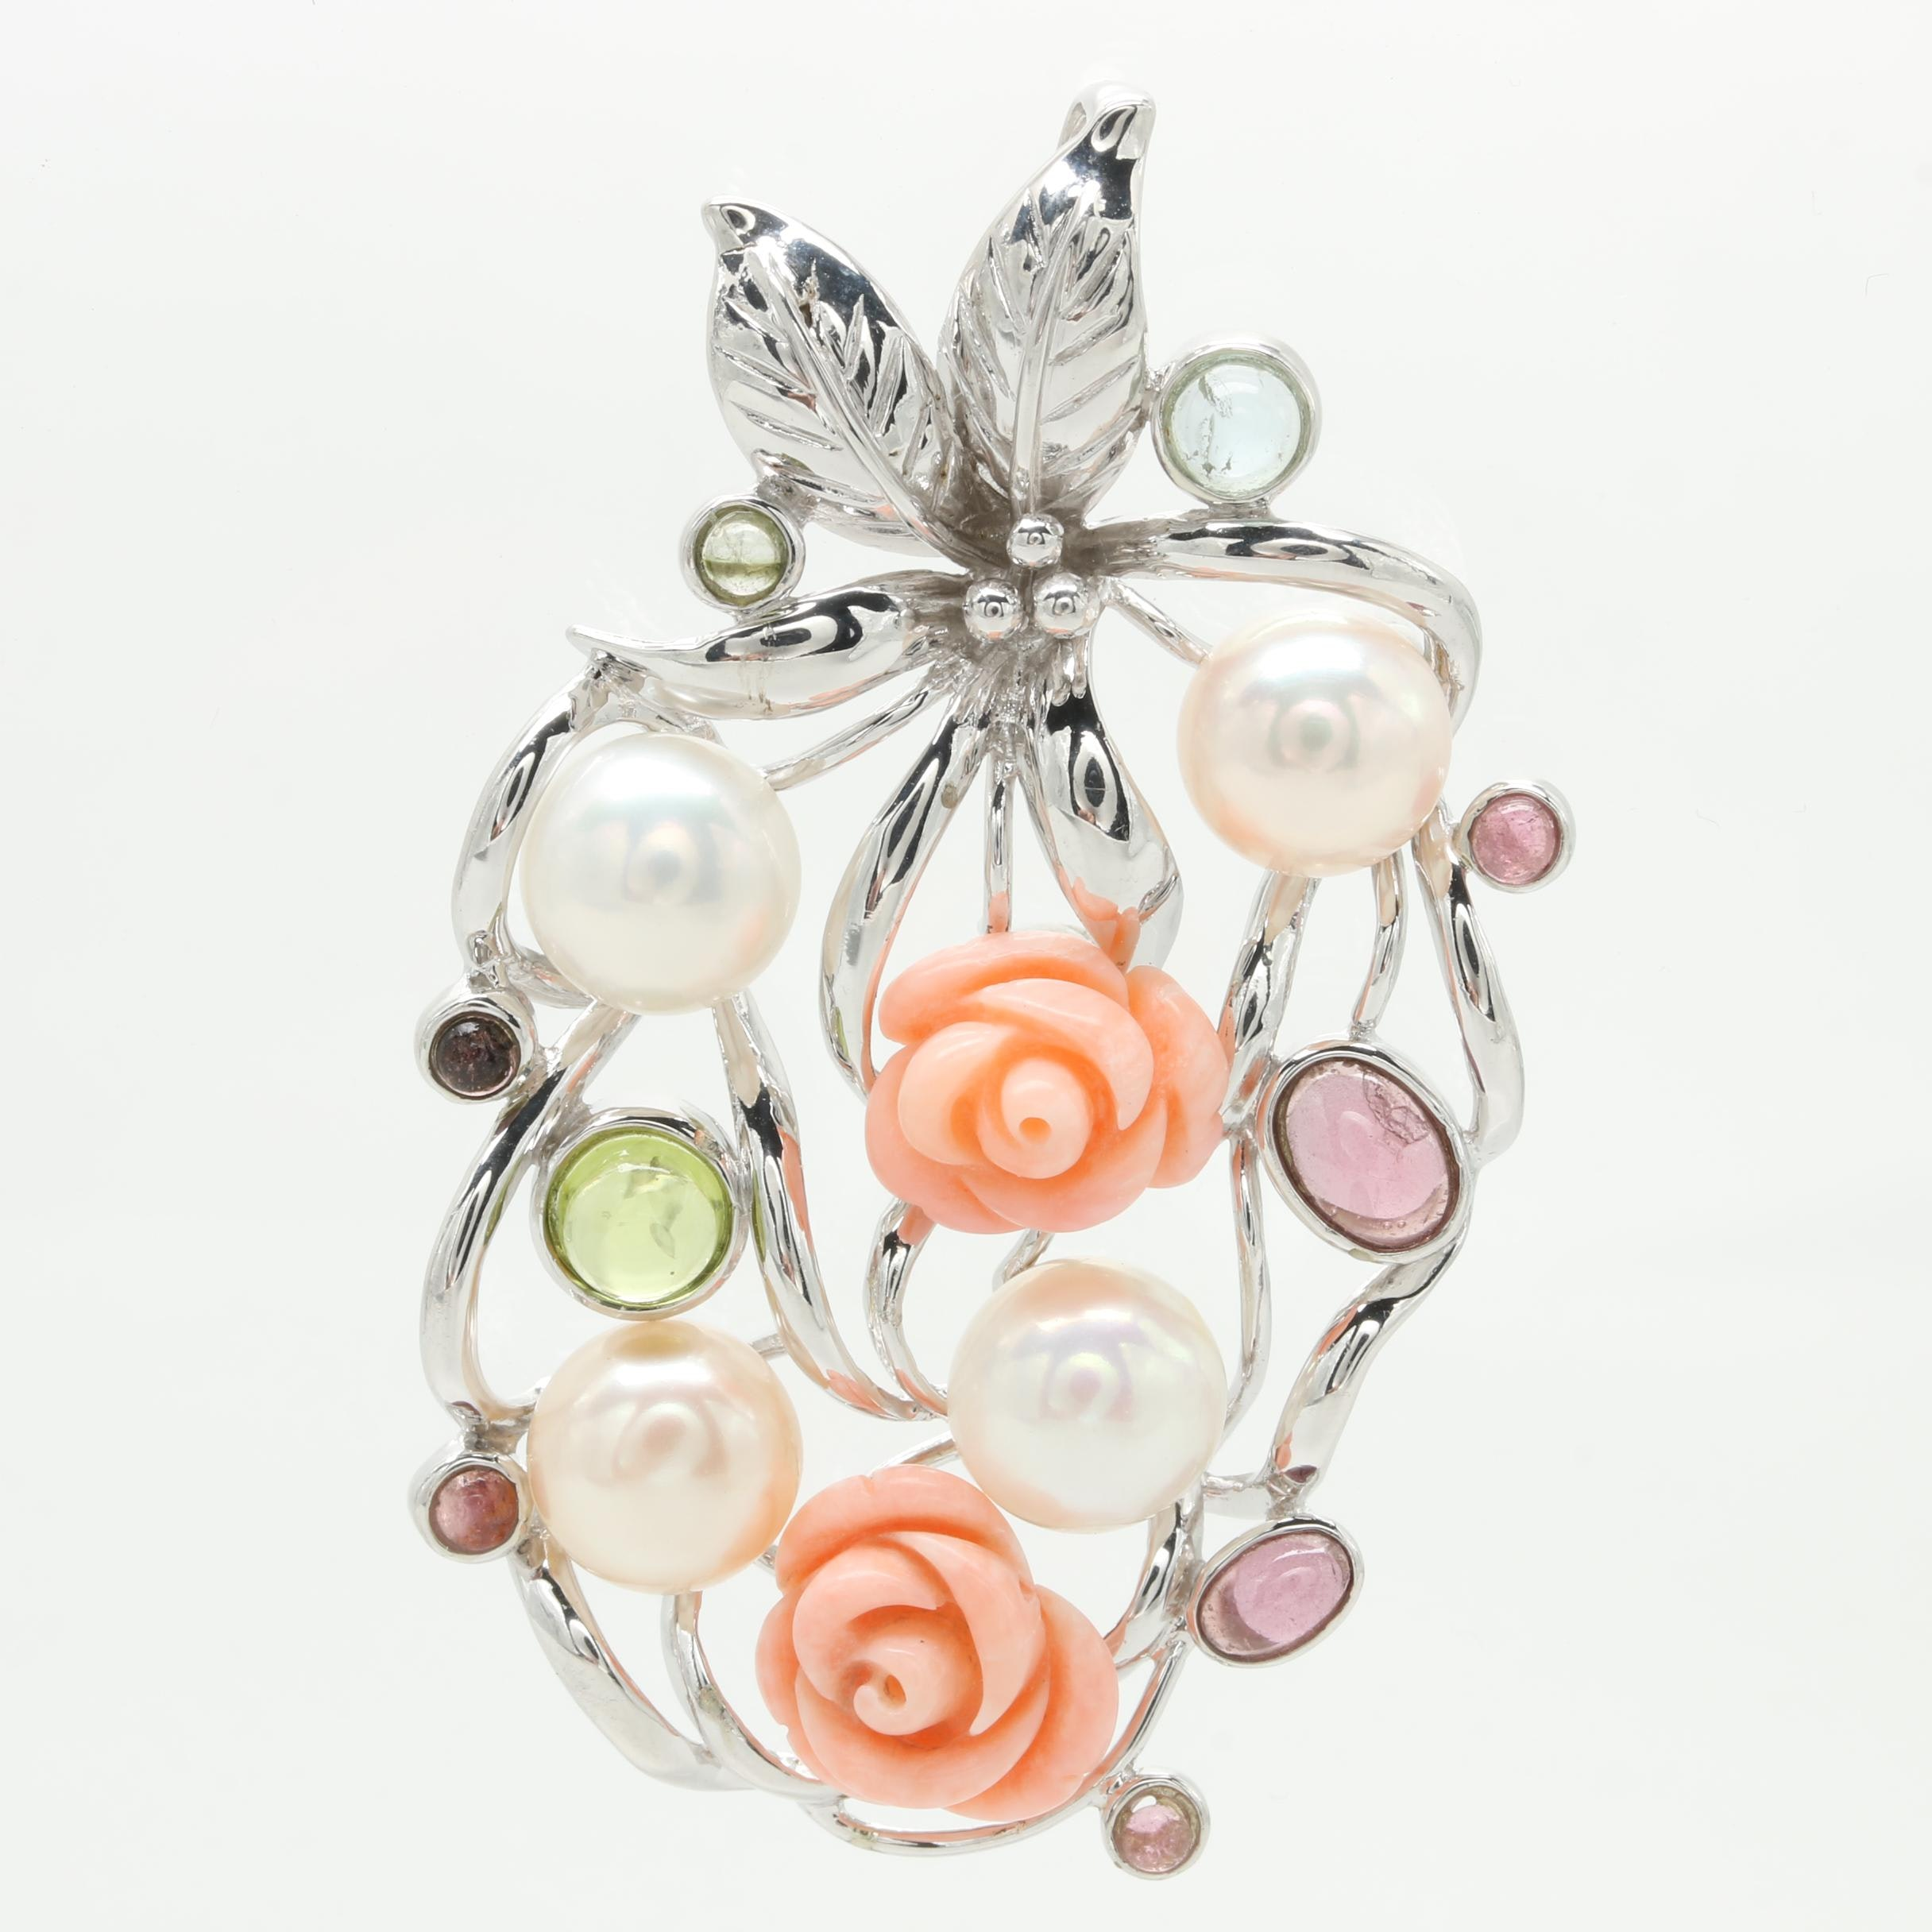 Sterling Silver Gemstone Pendant Including Cultured Pearl, Coral, and Peridot